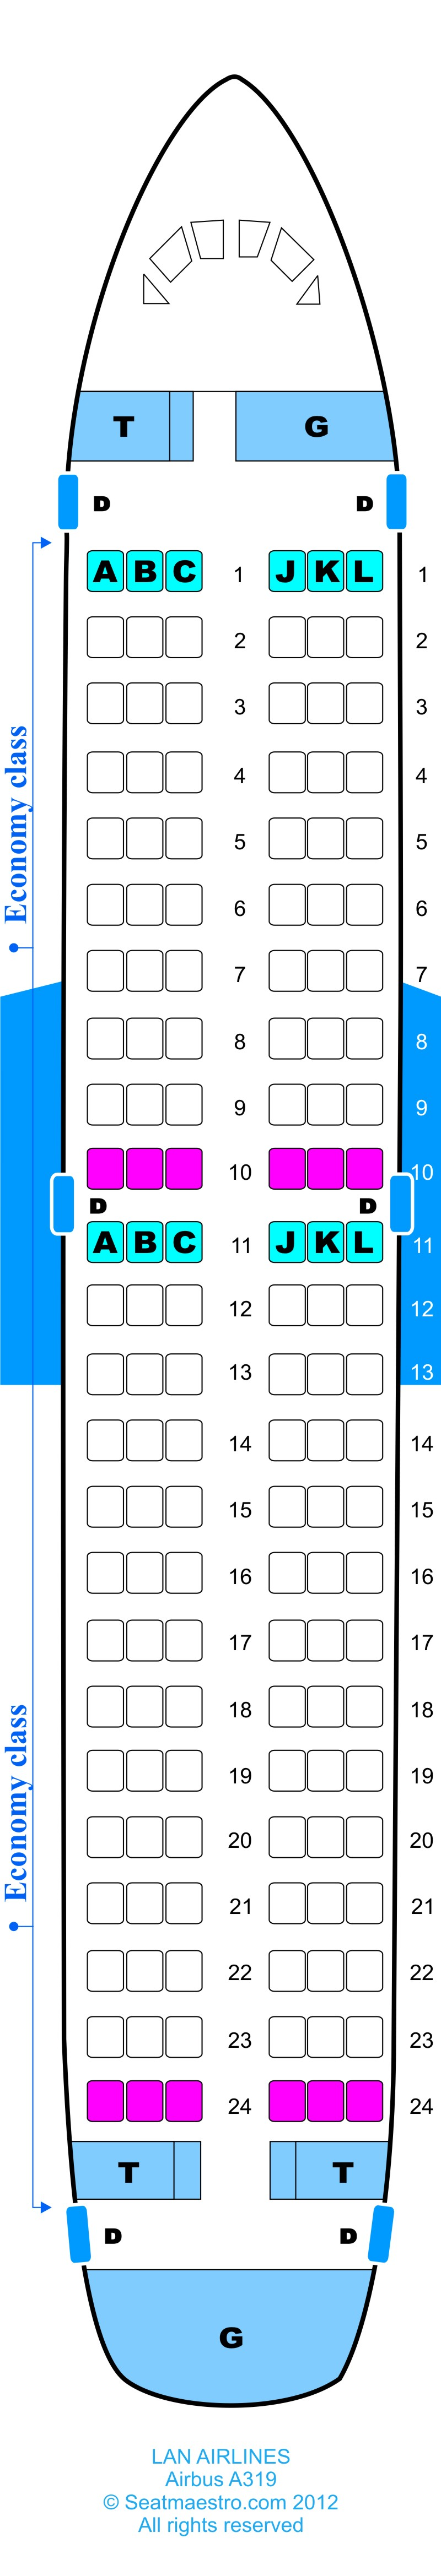 Detailed seat map Skyservice Airlines Airbus Find the best airplanes seats information on legroom recline and in flight entertainment using our detailed